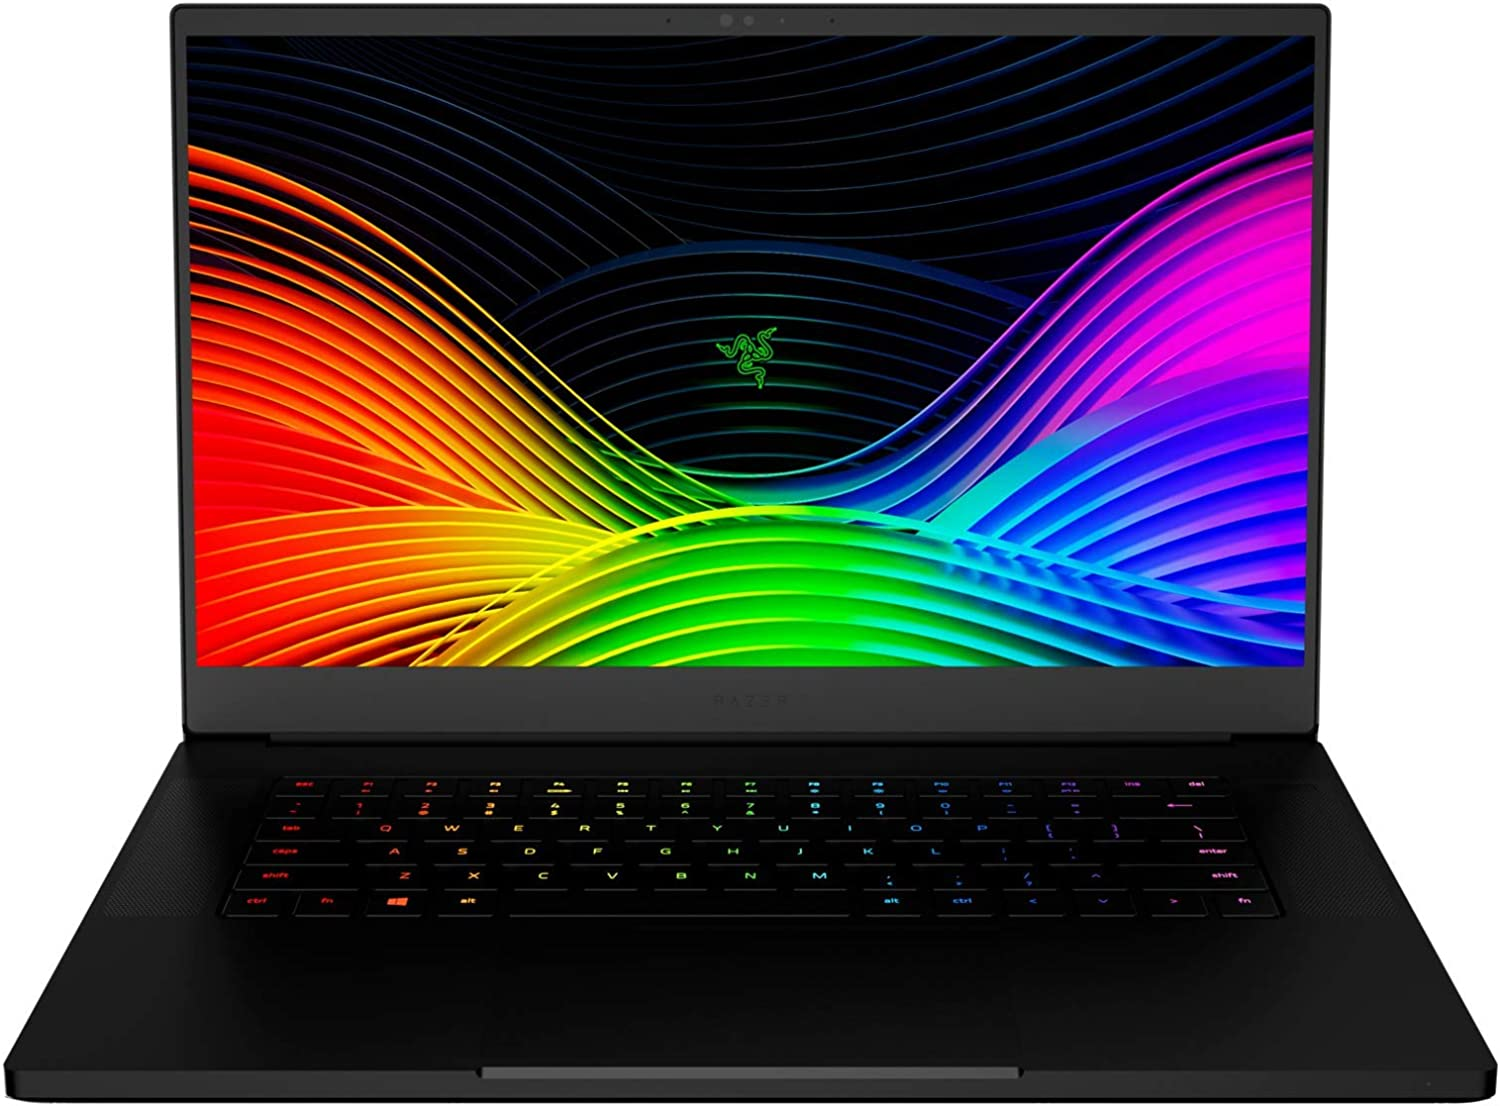 "Razer Blade 15 Gaming Laptop 2019: Intel Core i7-9750H 6 Core, NVIDIA GeForce RTX 2080 Max-Q, 15.6"" FHD 1080p 240Hz, 16GB RAM, 512GB SSD, CNC Aluminum, Chroma RGB Lighting, Thunderbolt 3"